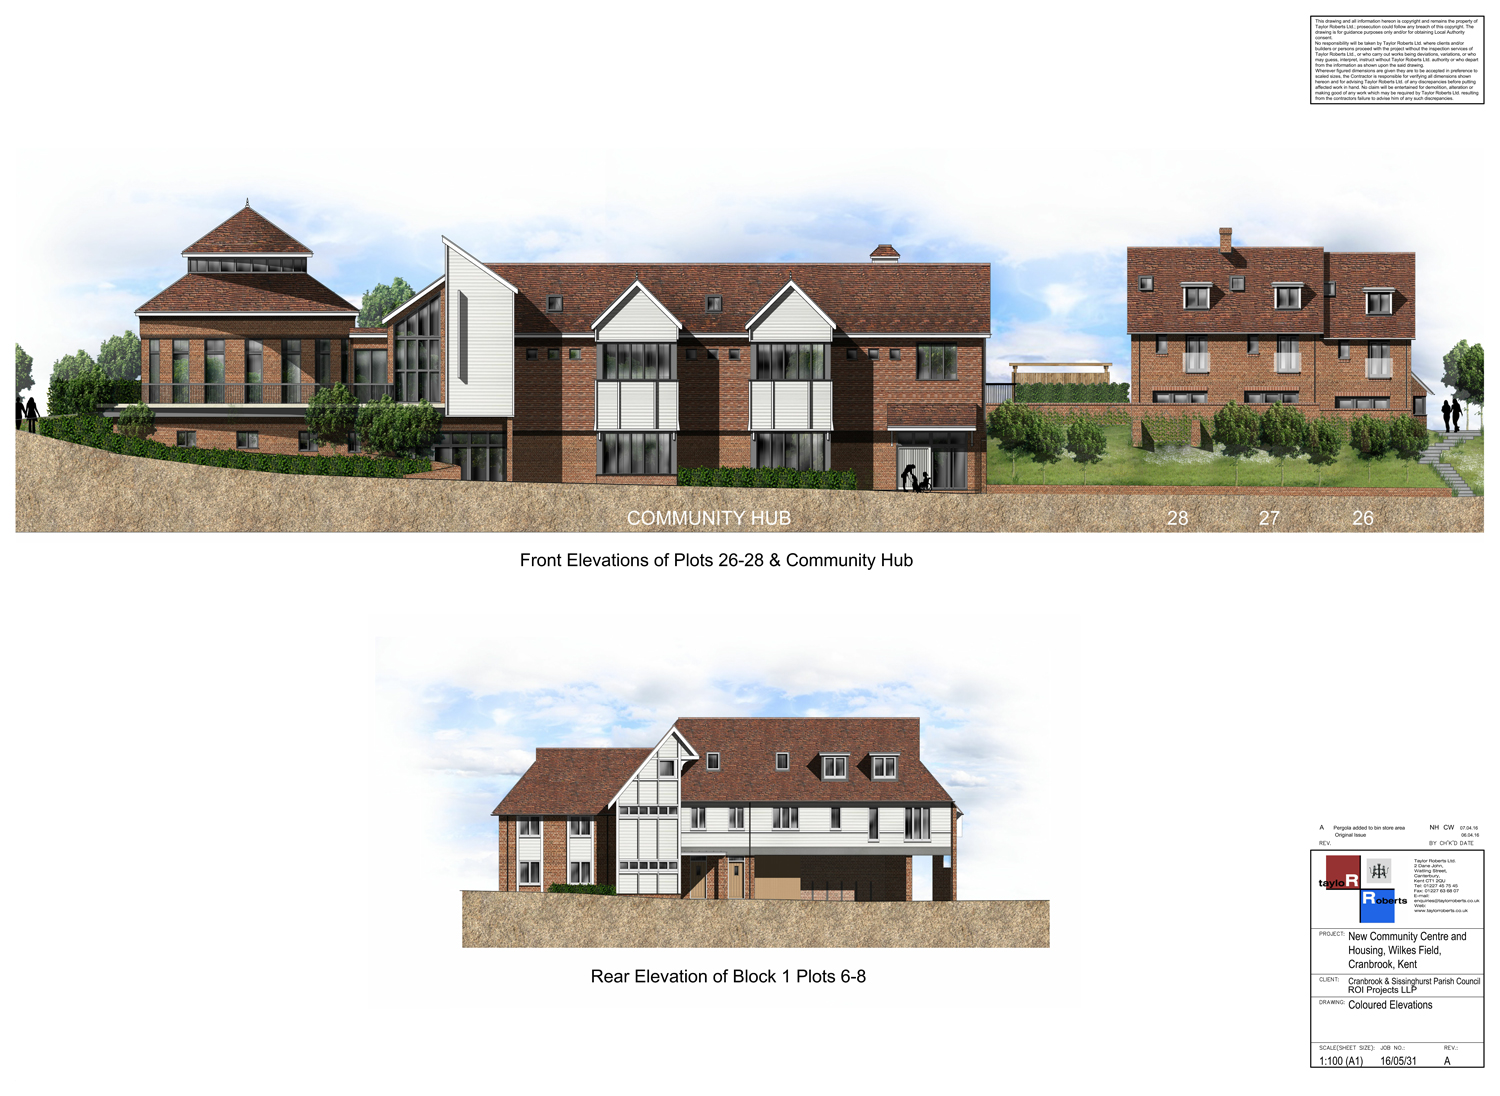 16-05-31-A---Coloured-Elevations-copy.jpg